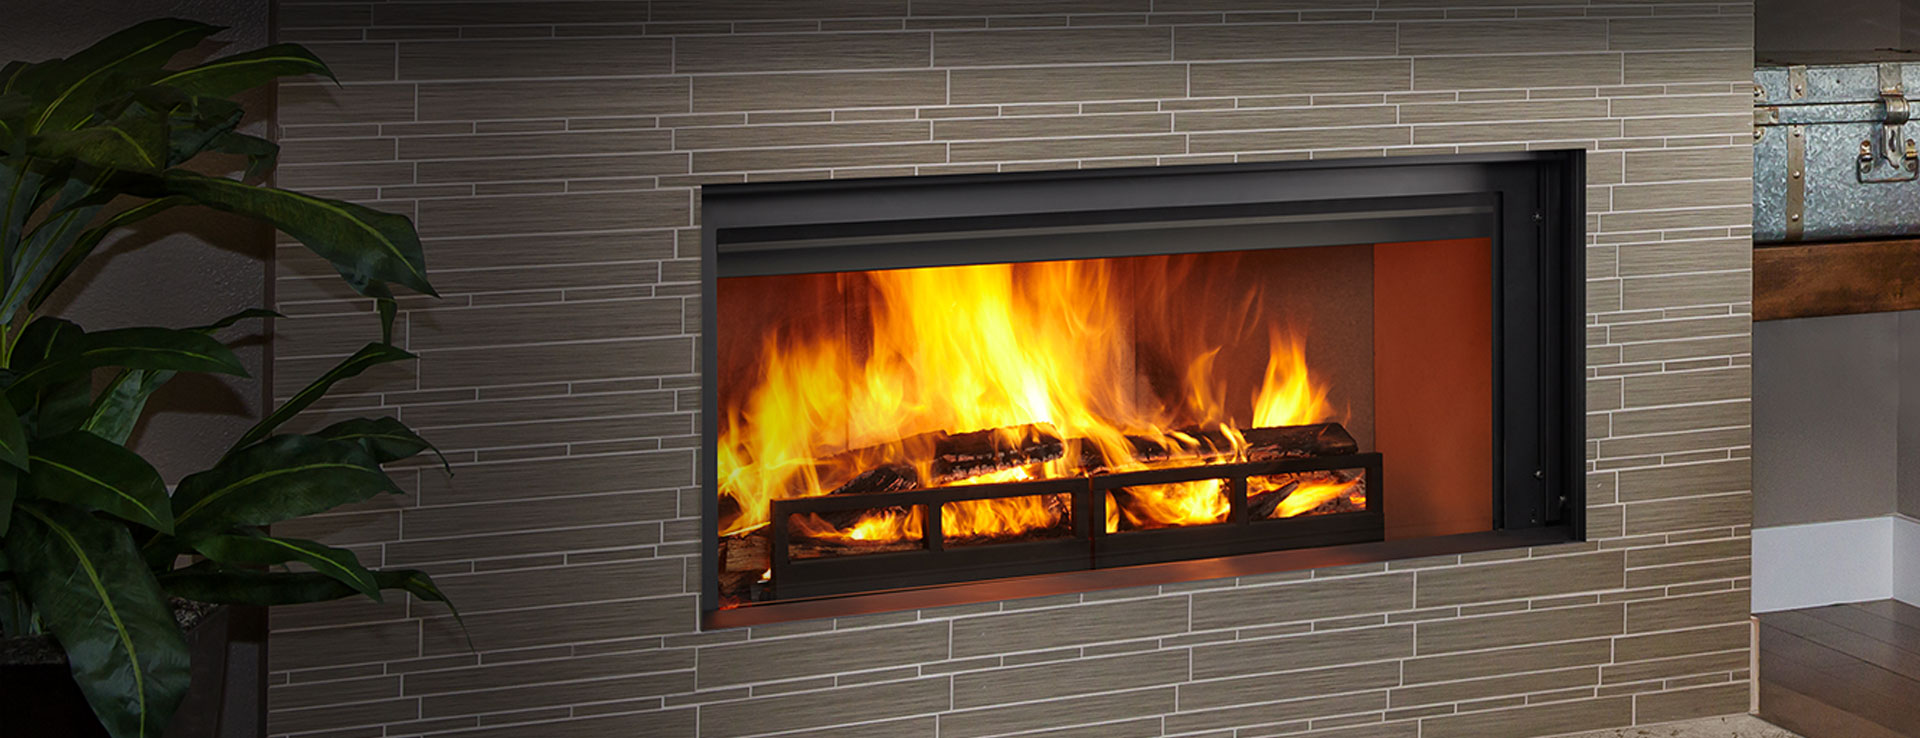 tips to maintain wood burning fireplace michigan